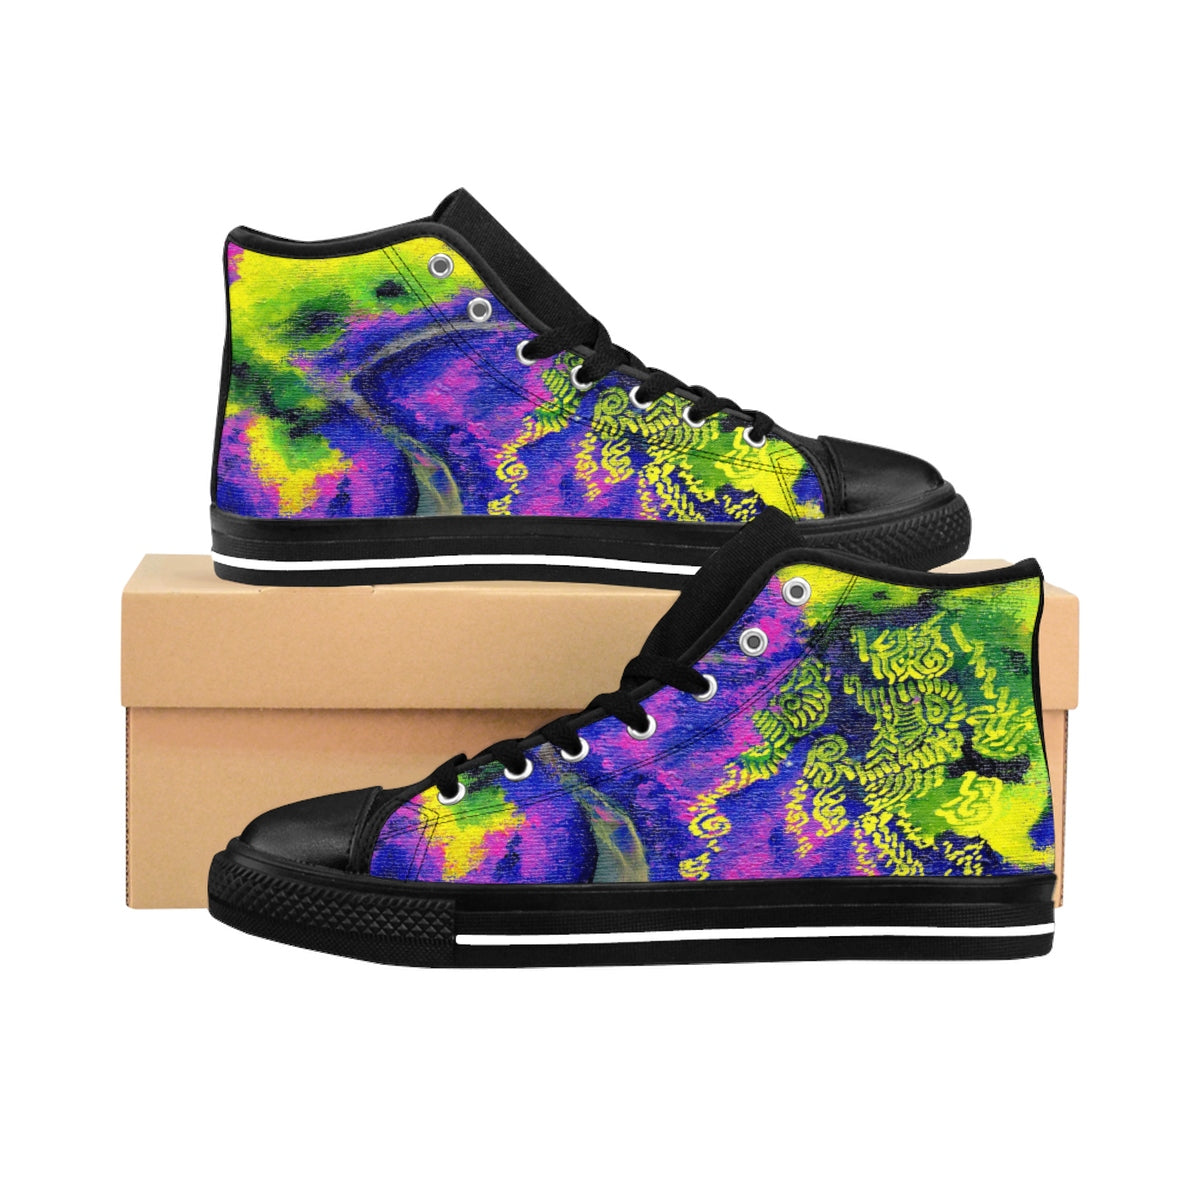 Wacky Willow High-top Sneakers